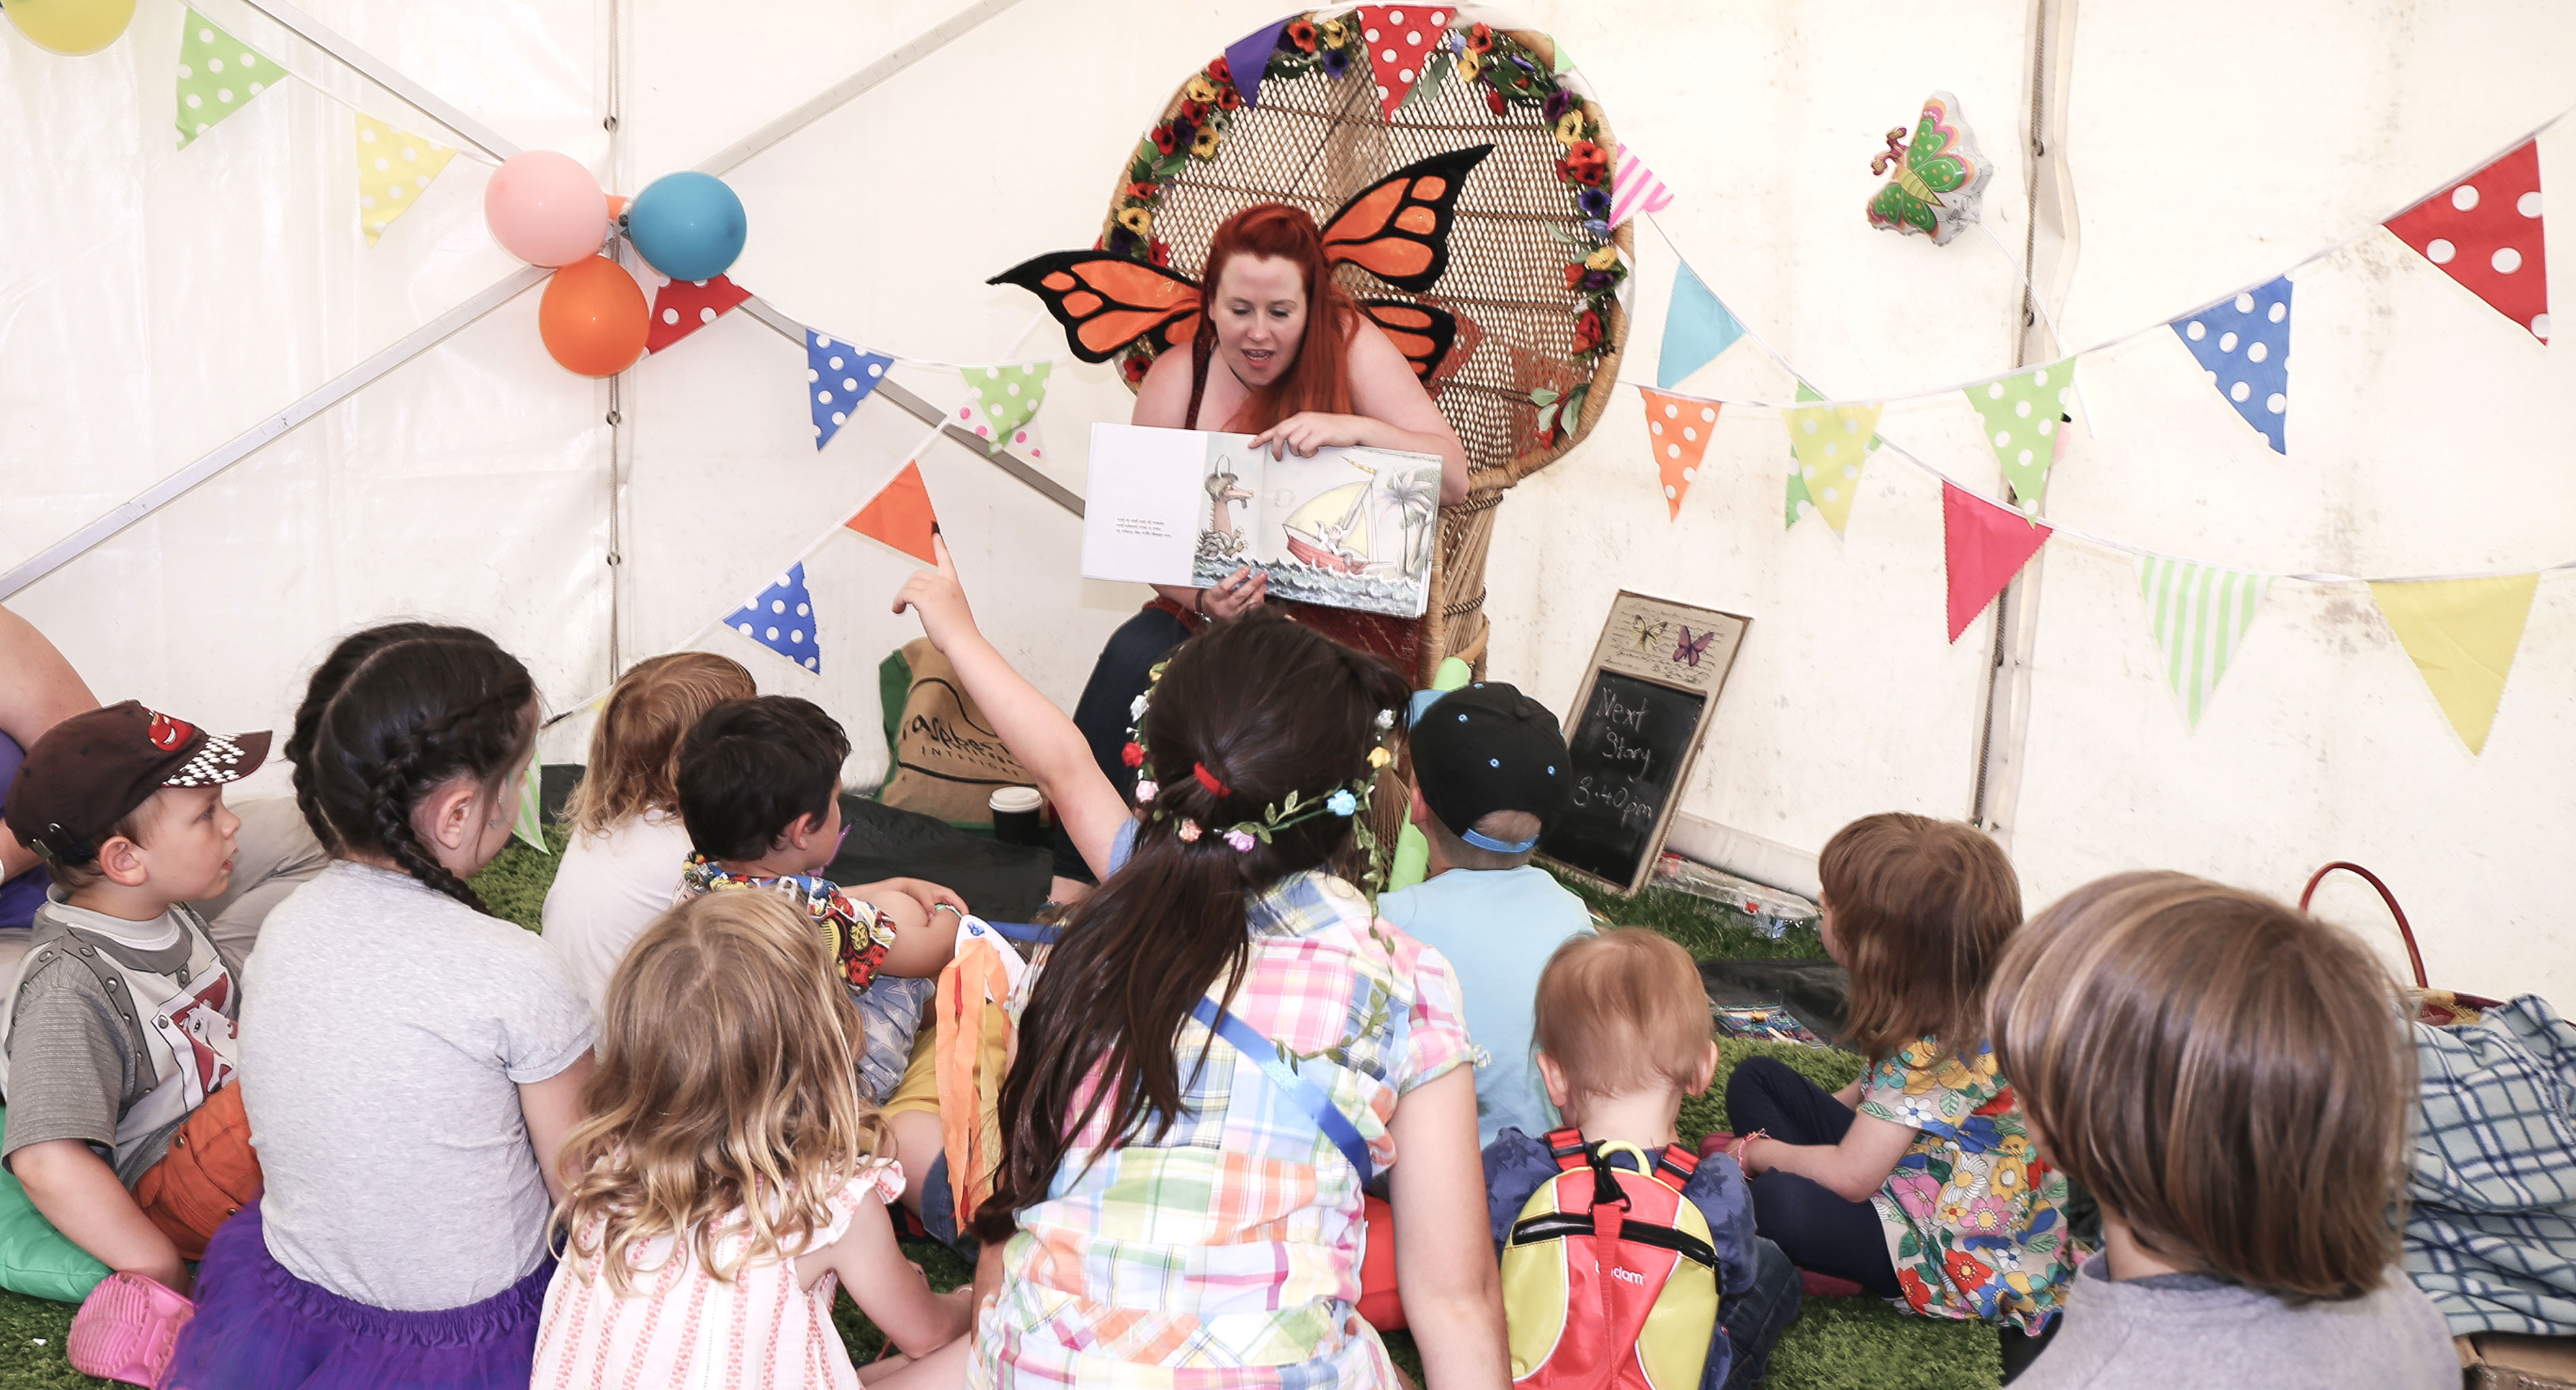 Story-telling at family-friendly festival